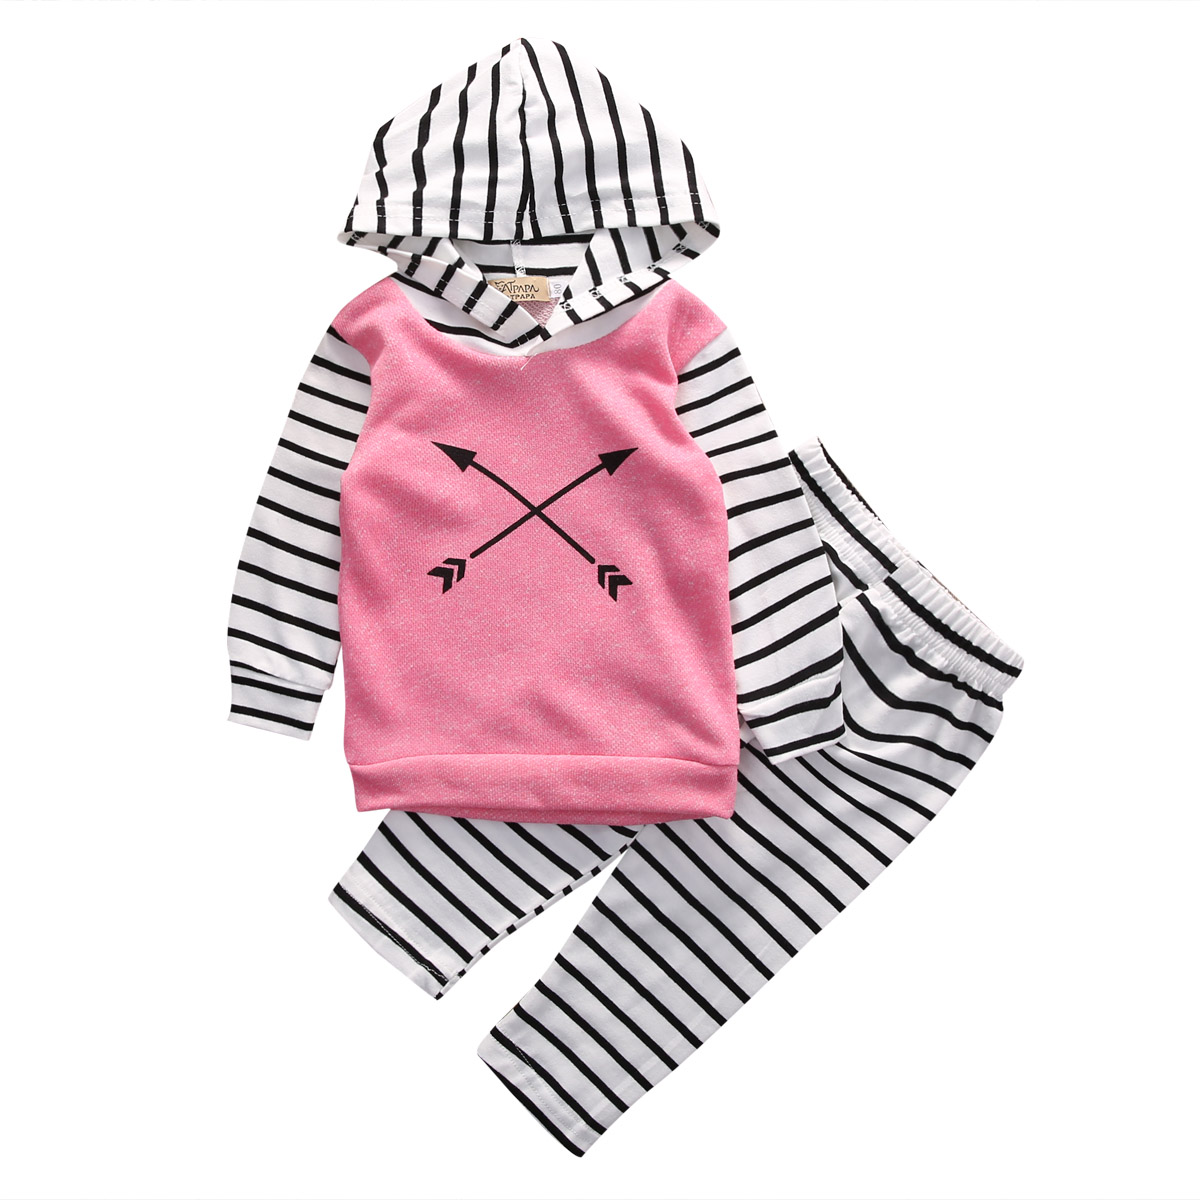 2pcs Newborn Infant Baby Girl Clothes Autumn Striped Long Sleeve Hooded Arrow Top+Striped Pant Baby Clothes Set Baby Sportswear newborn infant baby girl short sleeve arrow romper striped leg warmers headband 3pcs pink outfits set clothes